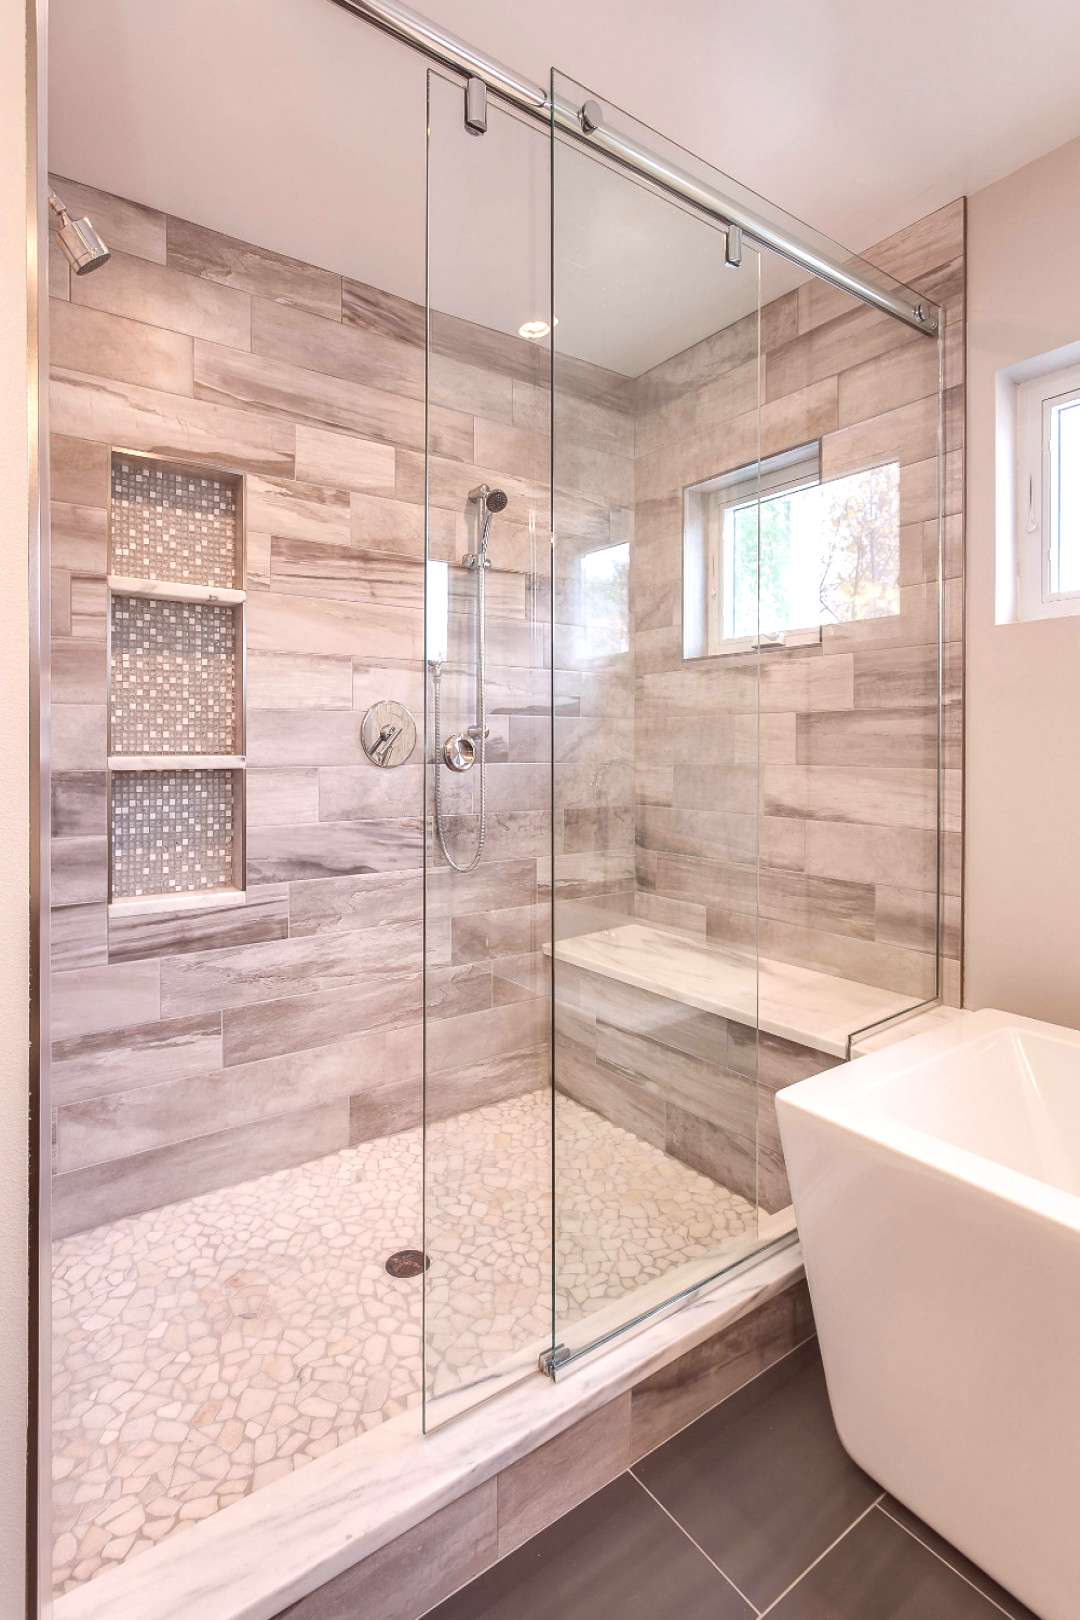 Gorgeous Custom Bathroom with Extra Large Shower - Contemporary - Bathroom - Denver - by JM Kitchen